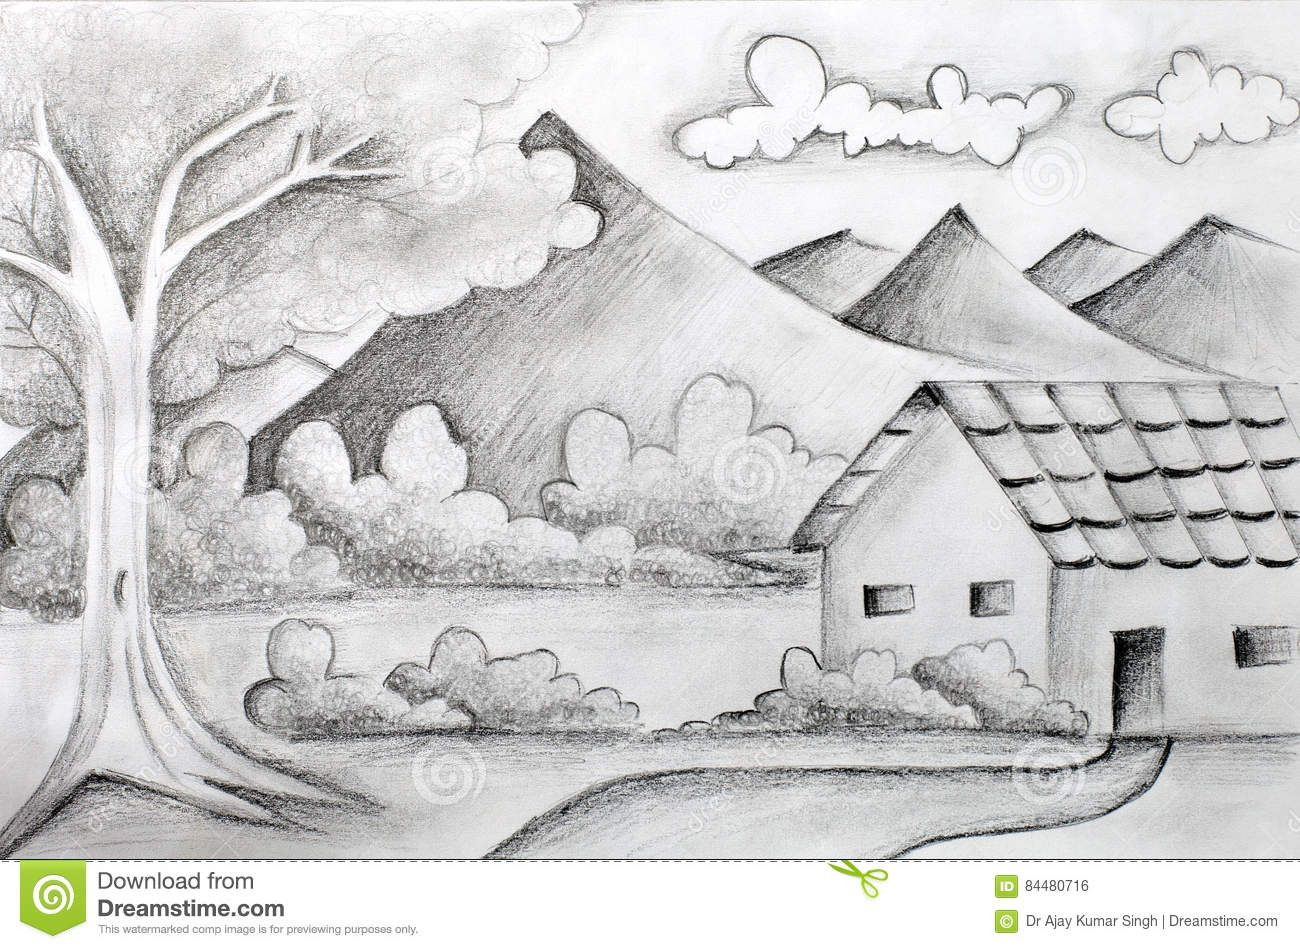 original pencil sketch of a landscape download from over 61